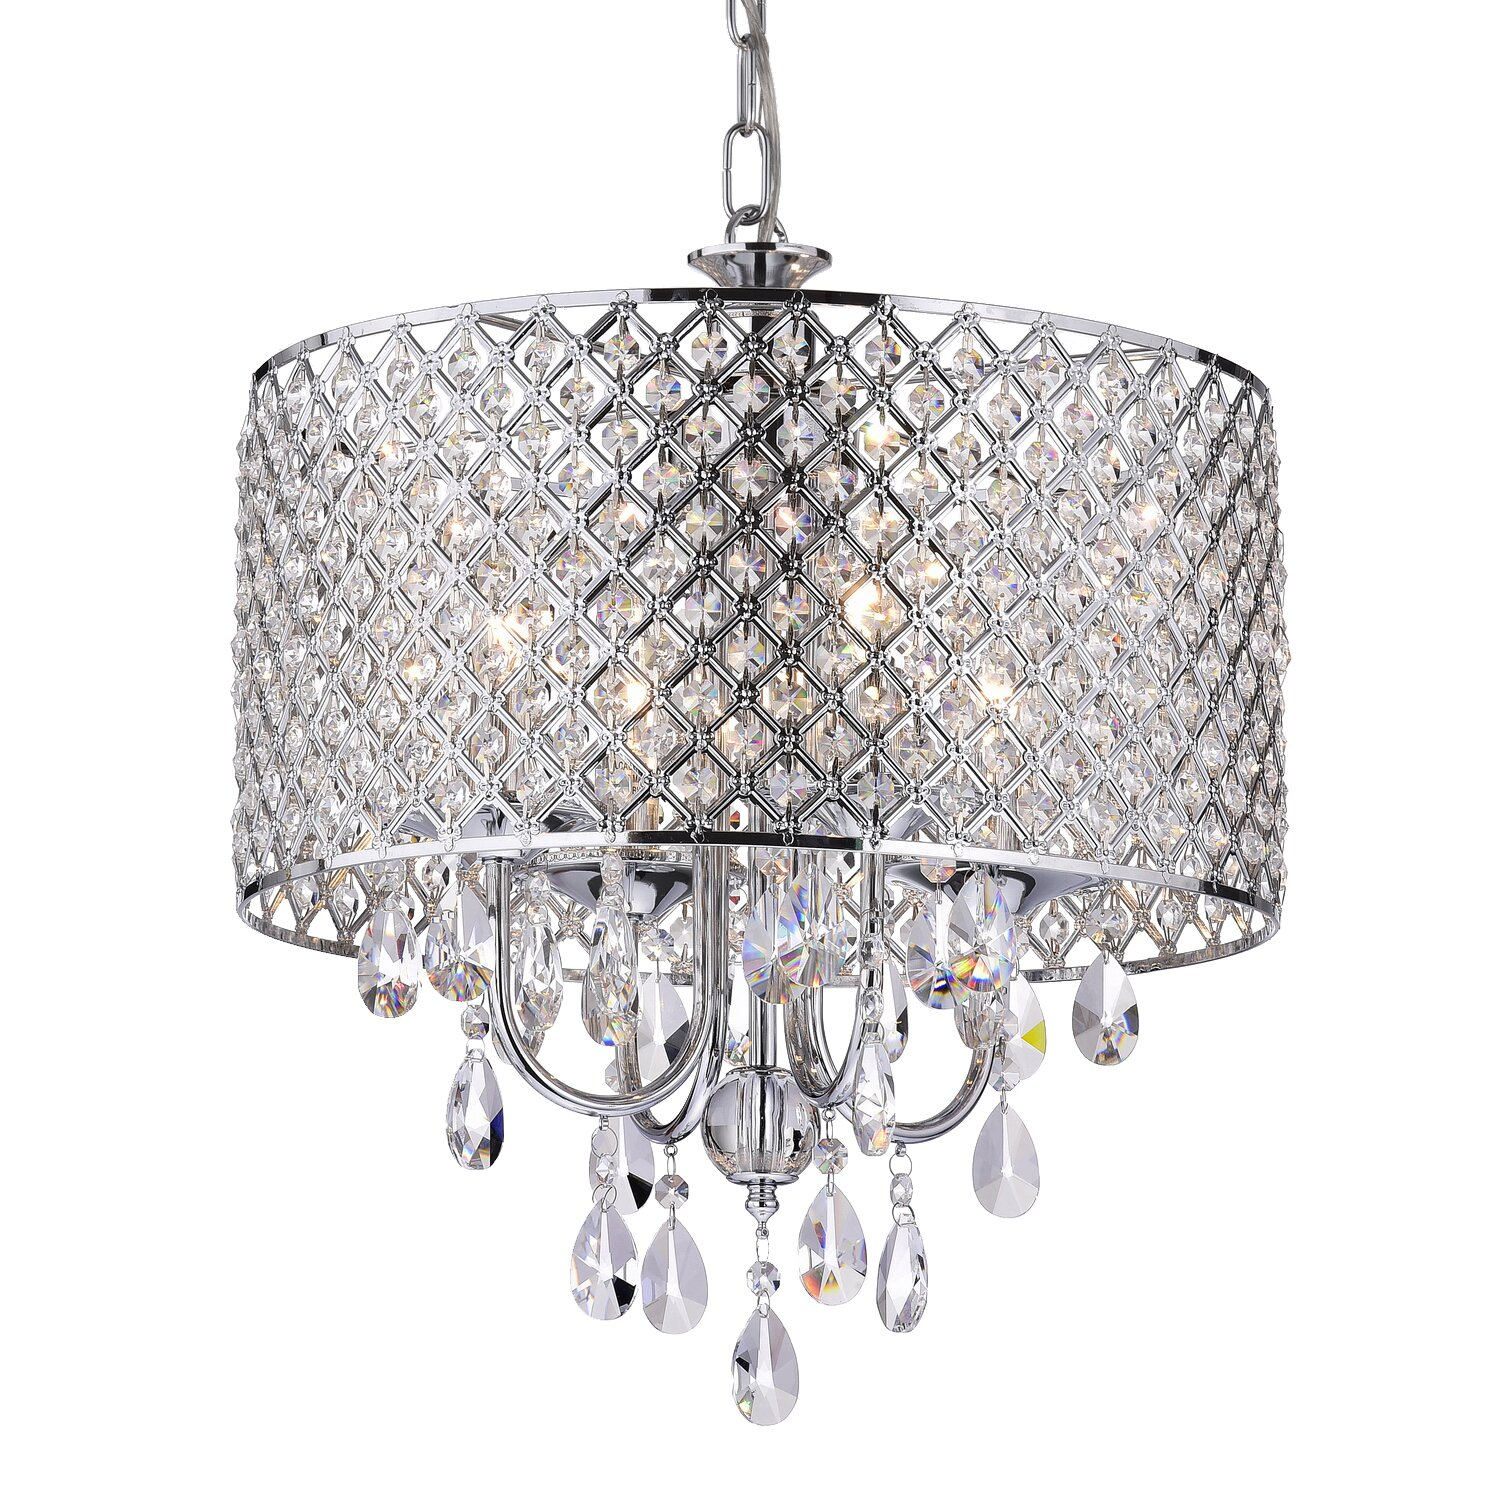 Edvivi marya 4 light drum chandelier wayfair - Ceiling lights and chandeliers ...